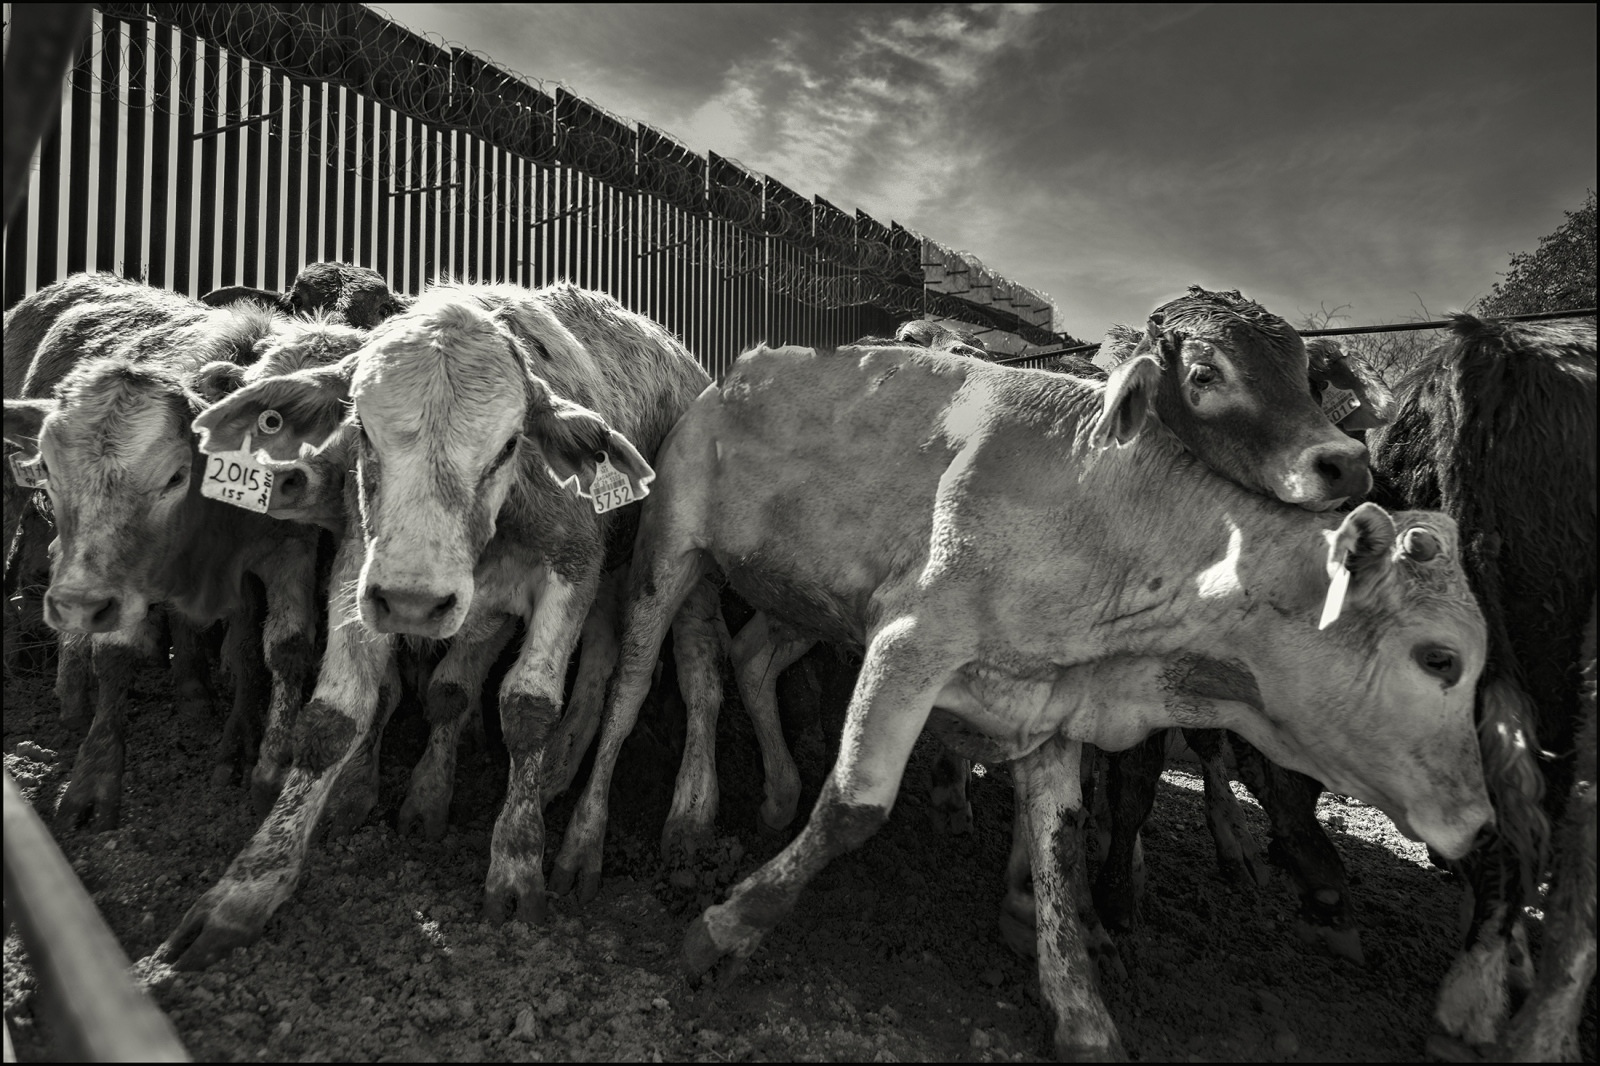 Mexican raised cattle entering into the United States at border gate, Nogales, Arizona. February 2019.